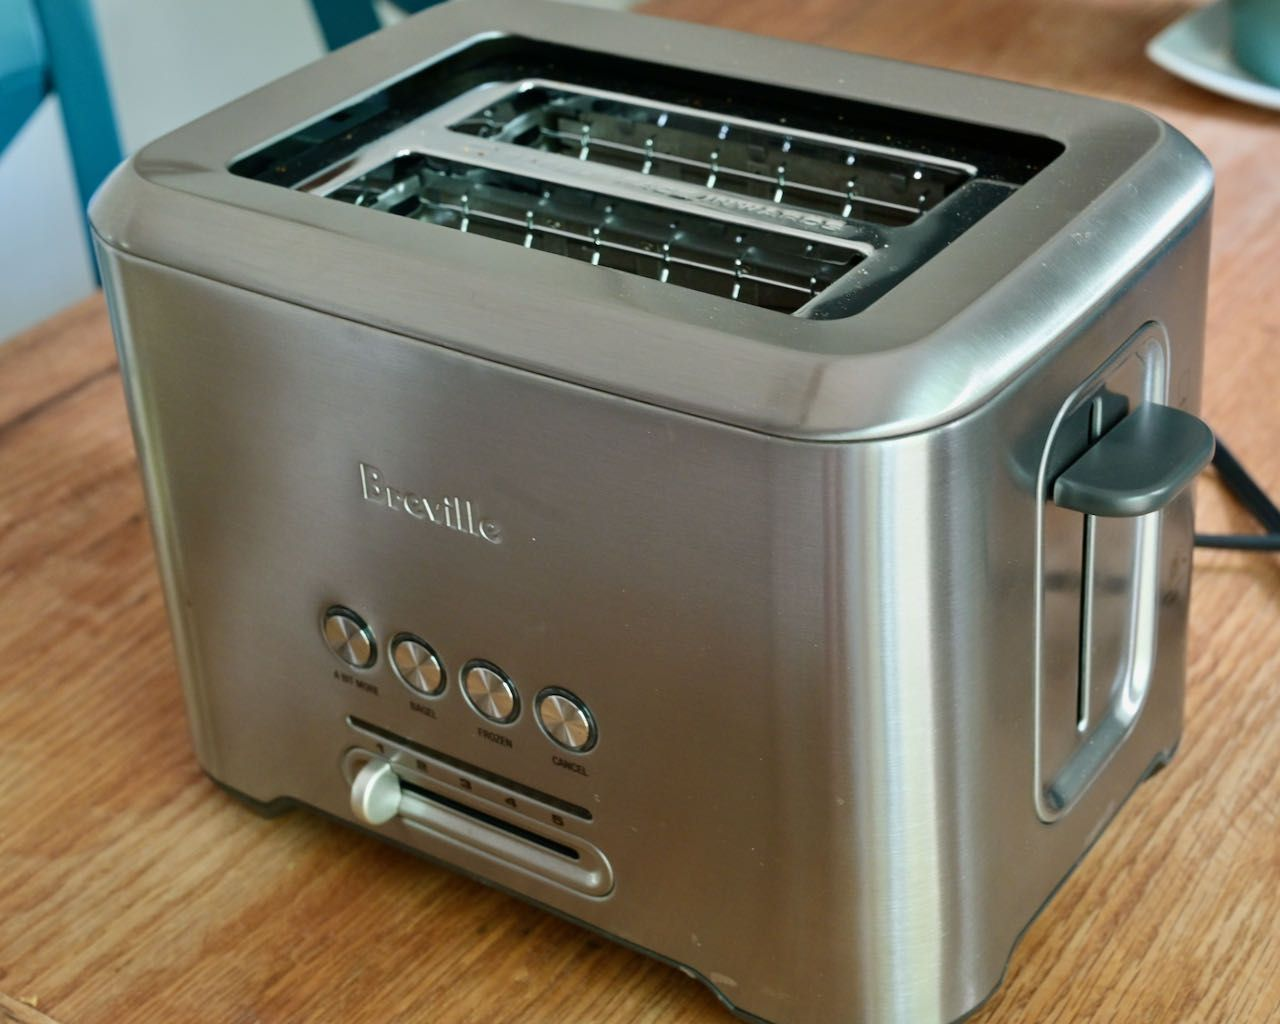 A shiny Breville toaster